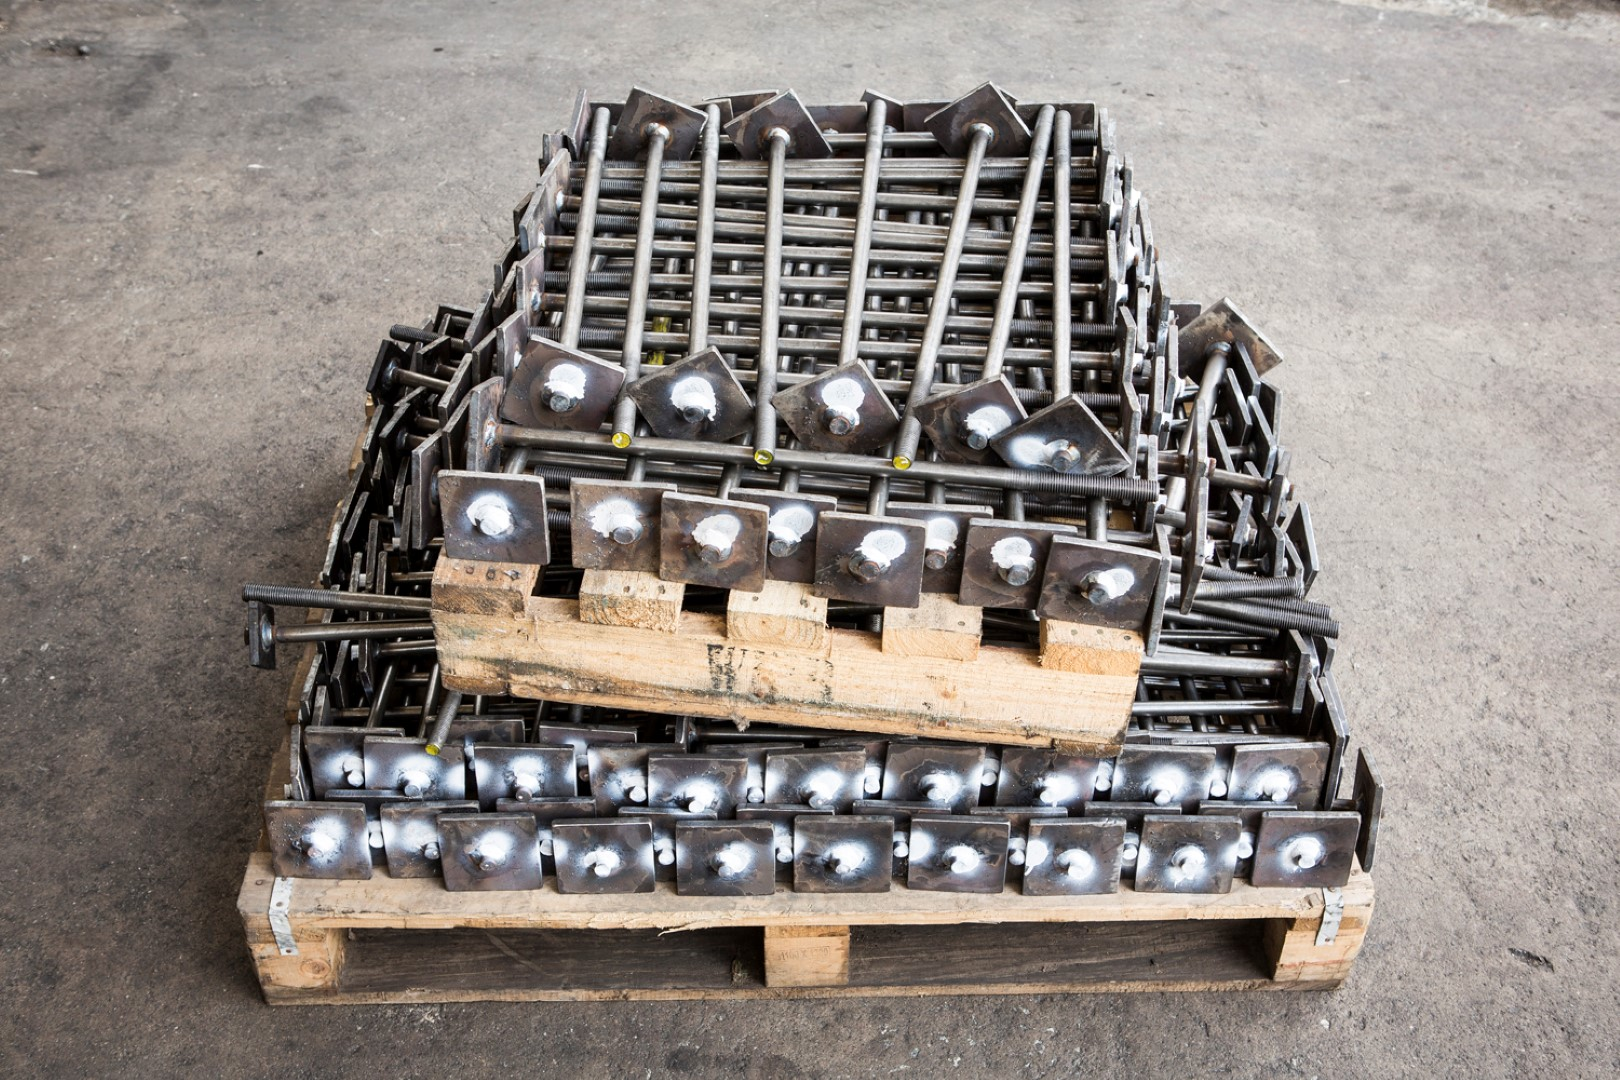 Foundation bolt with welded steel plate, packed on a pallet